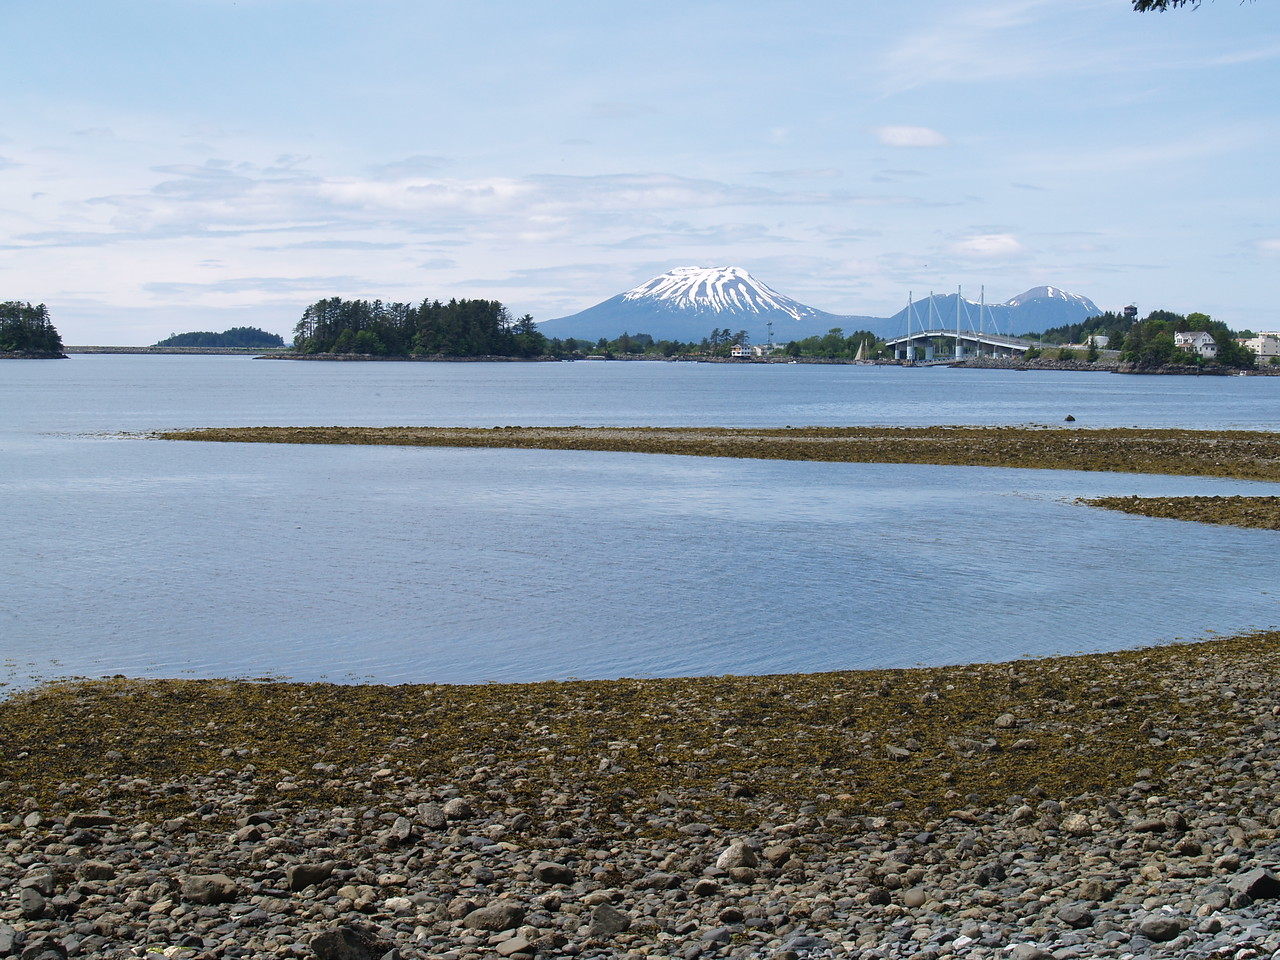 """I lived and worked in Sitka during the summer of 2007. It is experience that I will never forget. I would do it again. Here was my """"office view"""" every day. Mt. Edgecumbe is an extinct volcano and good thing - it's only 14 miles from Sitka. It's on Kruzof Island and accessible by boat. There are a lot of bears on the island but some awesome hiking trails, too!"""